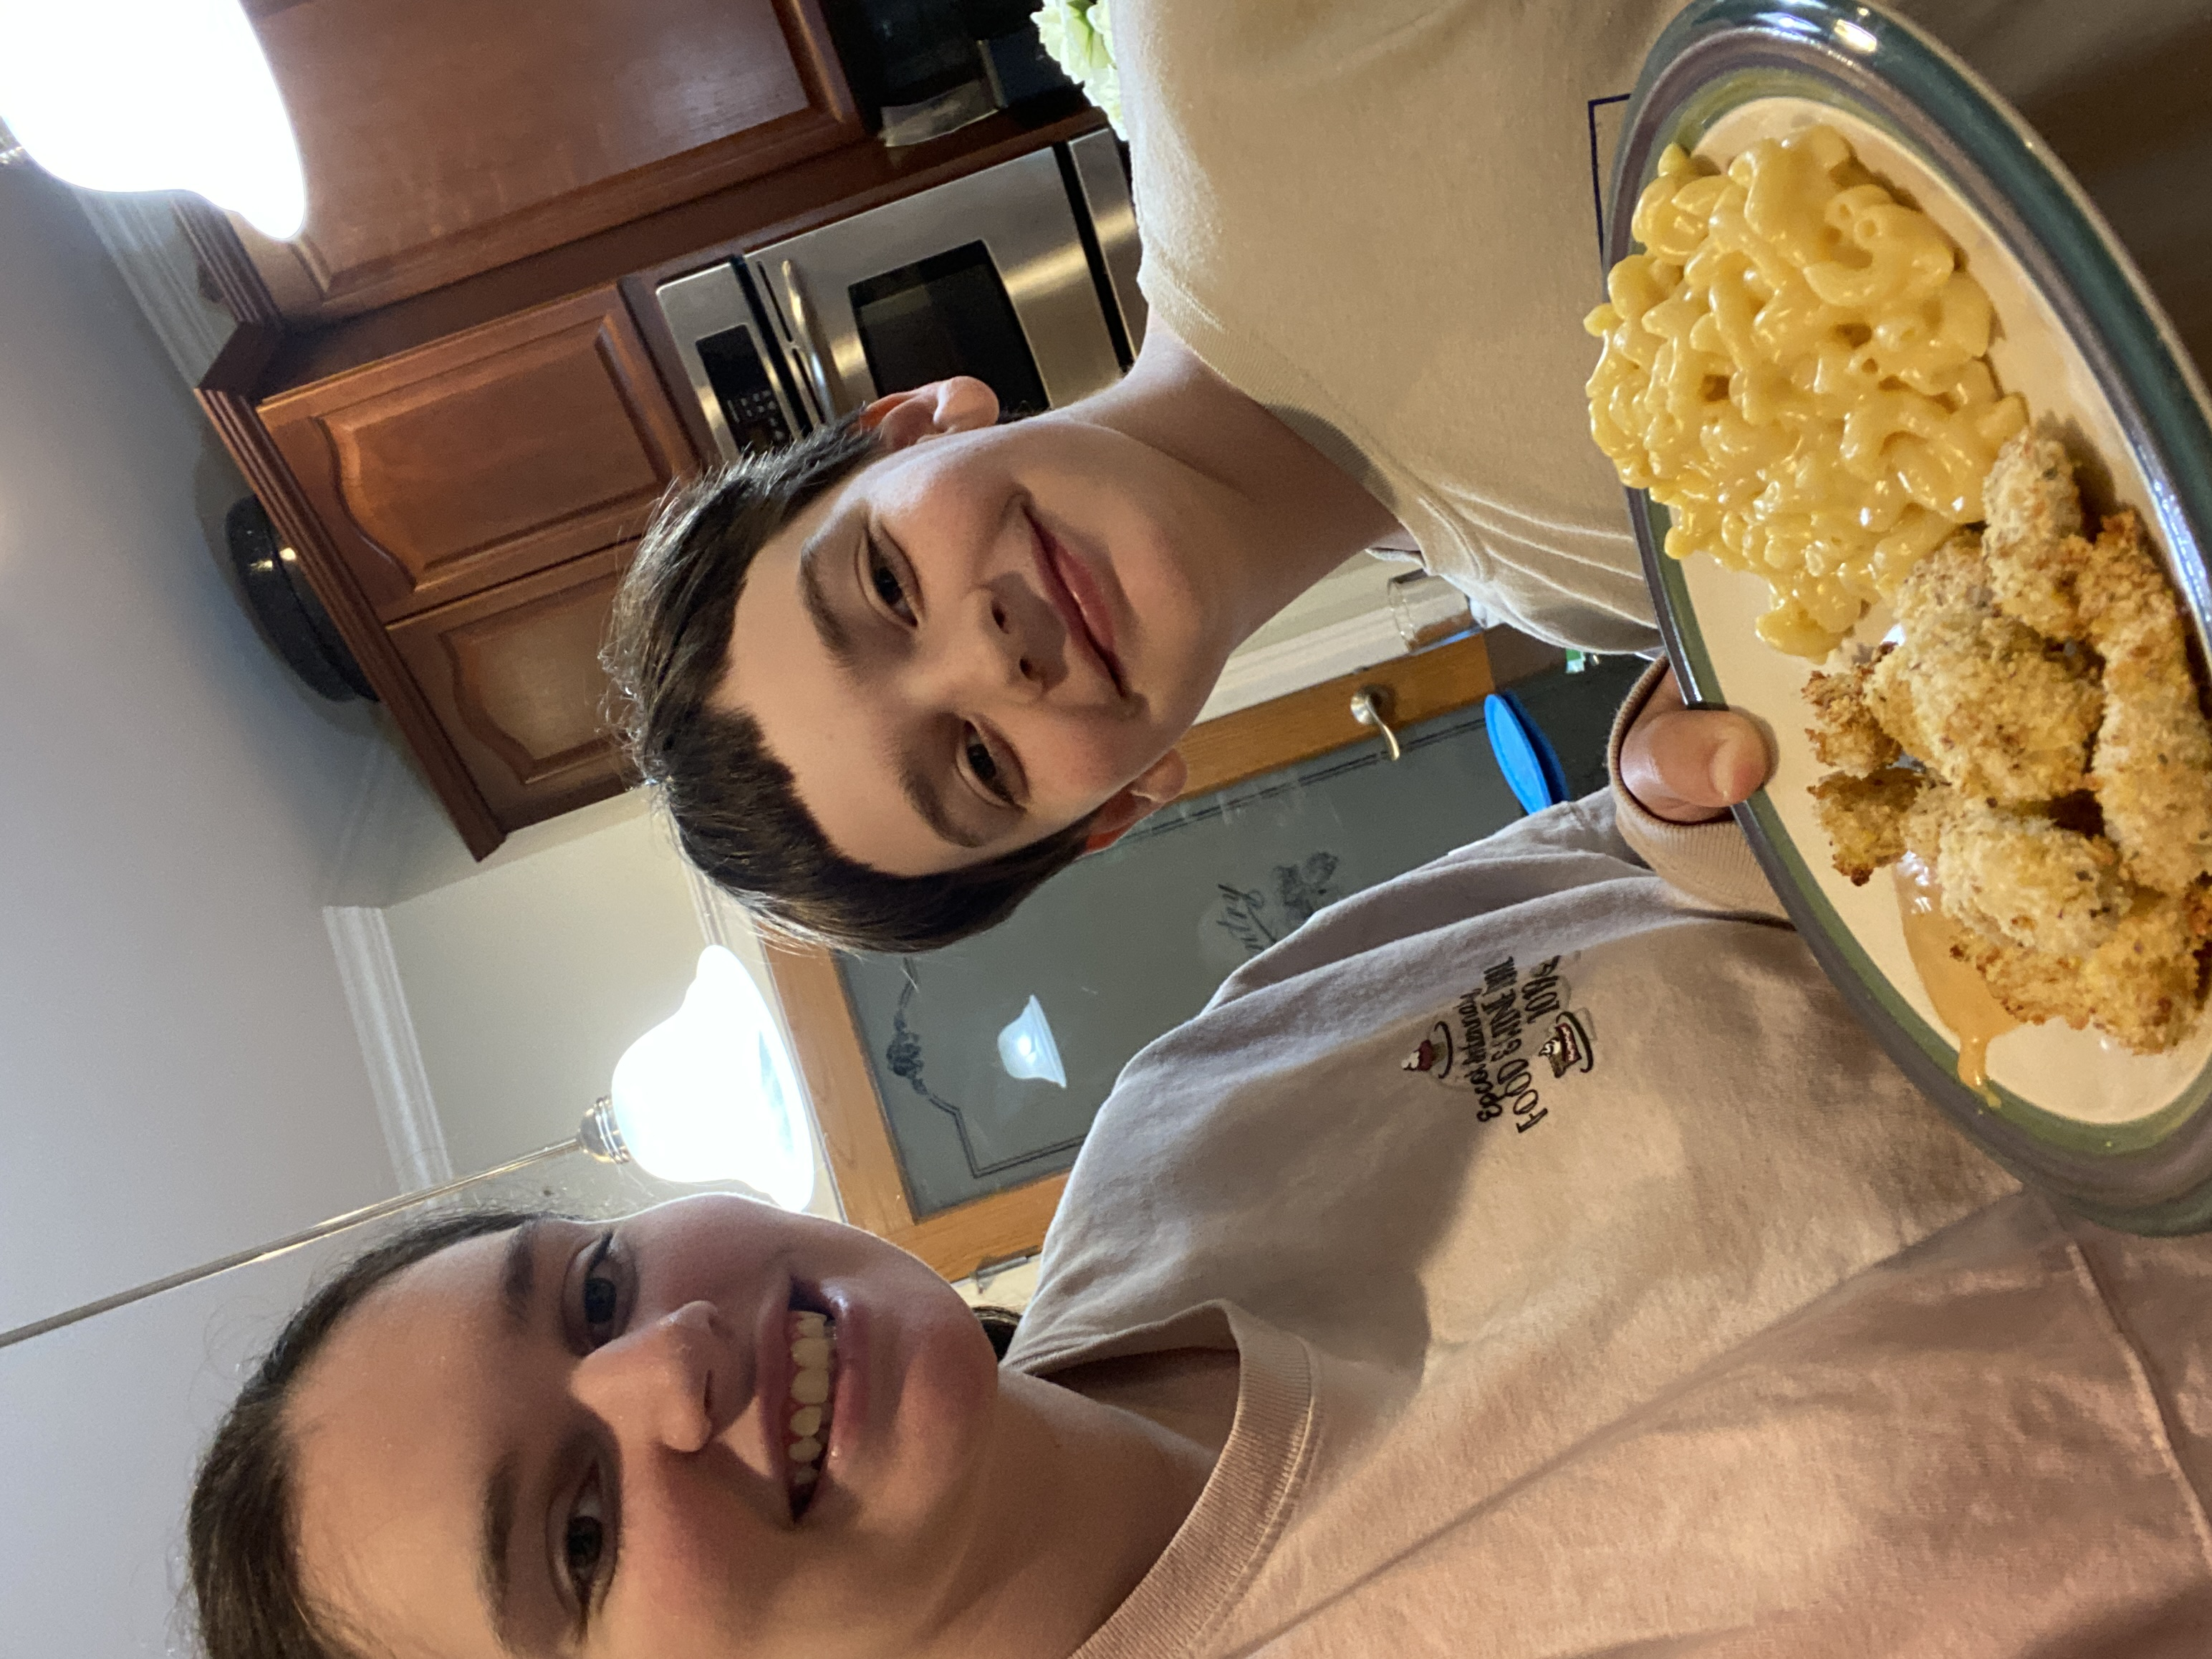 The Extension agents plan recipes according to the season and incorporate healthy, kid-friendly favorites. Among the recipes they have introduced are oven-baked chicken nuggets and stovetop broccoli macaroni and cheese.